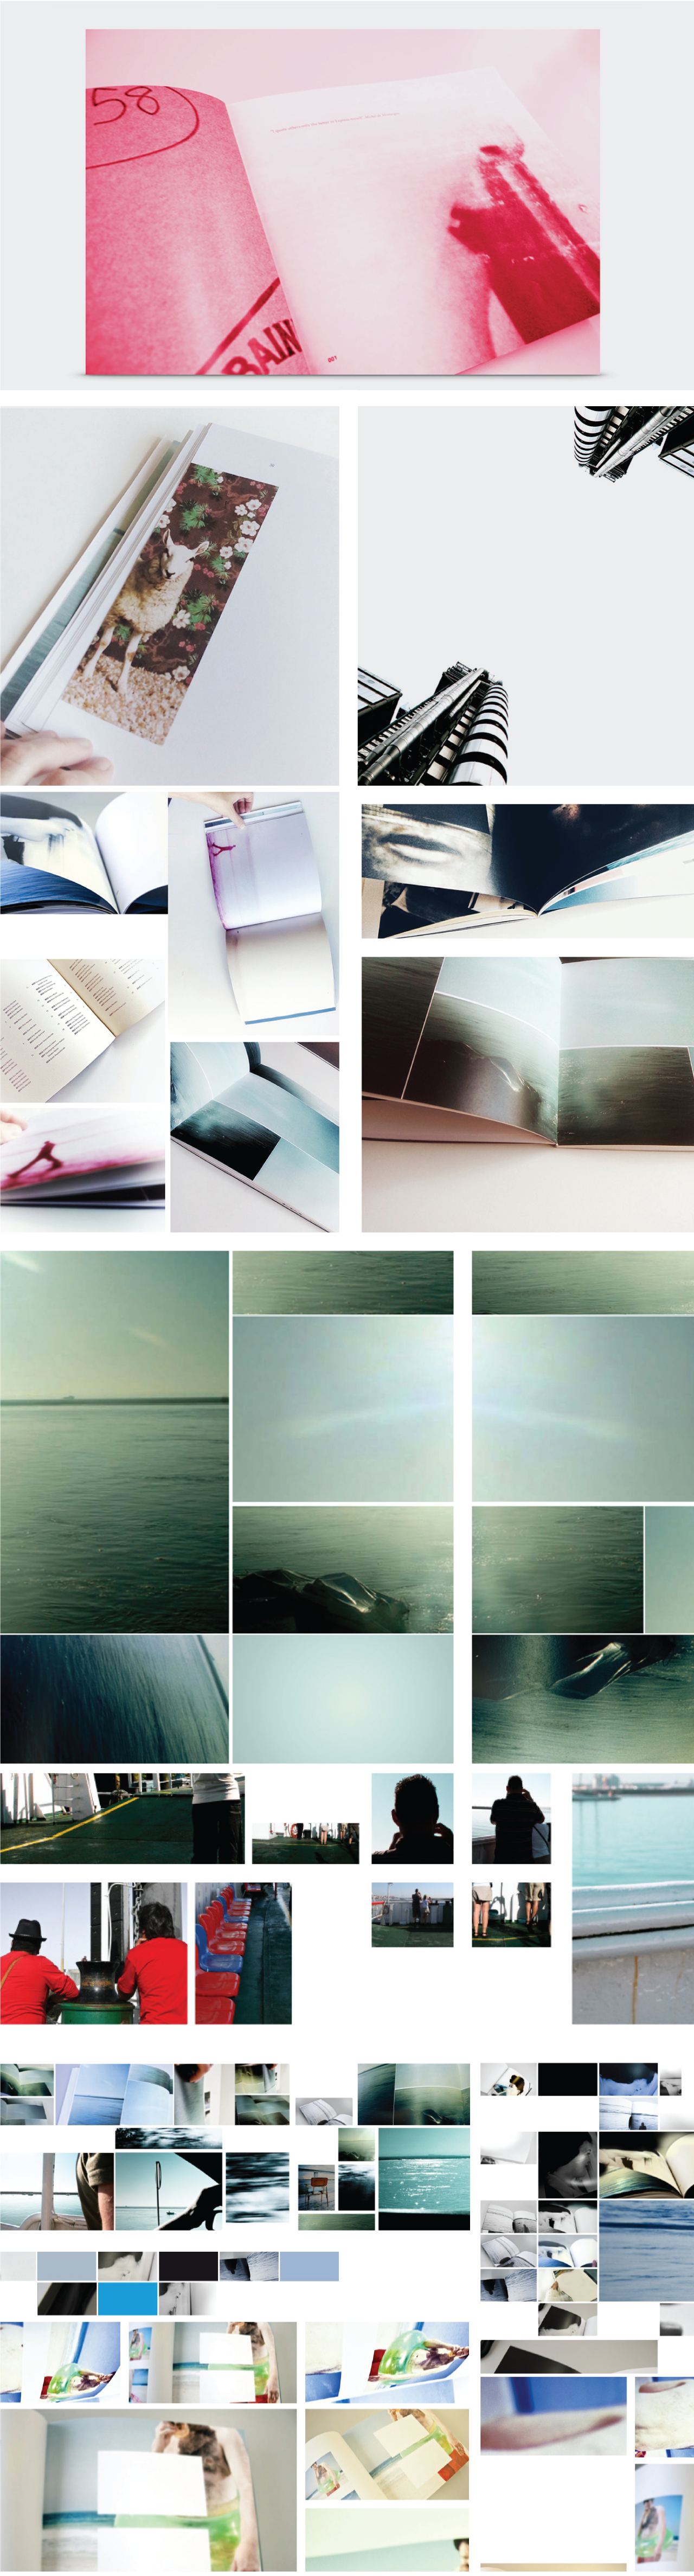 book-imagedesign